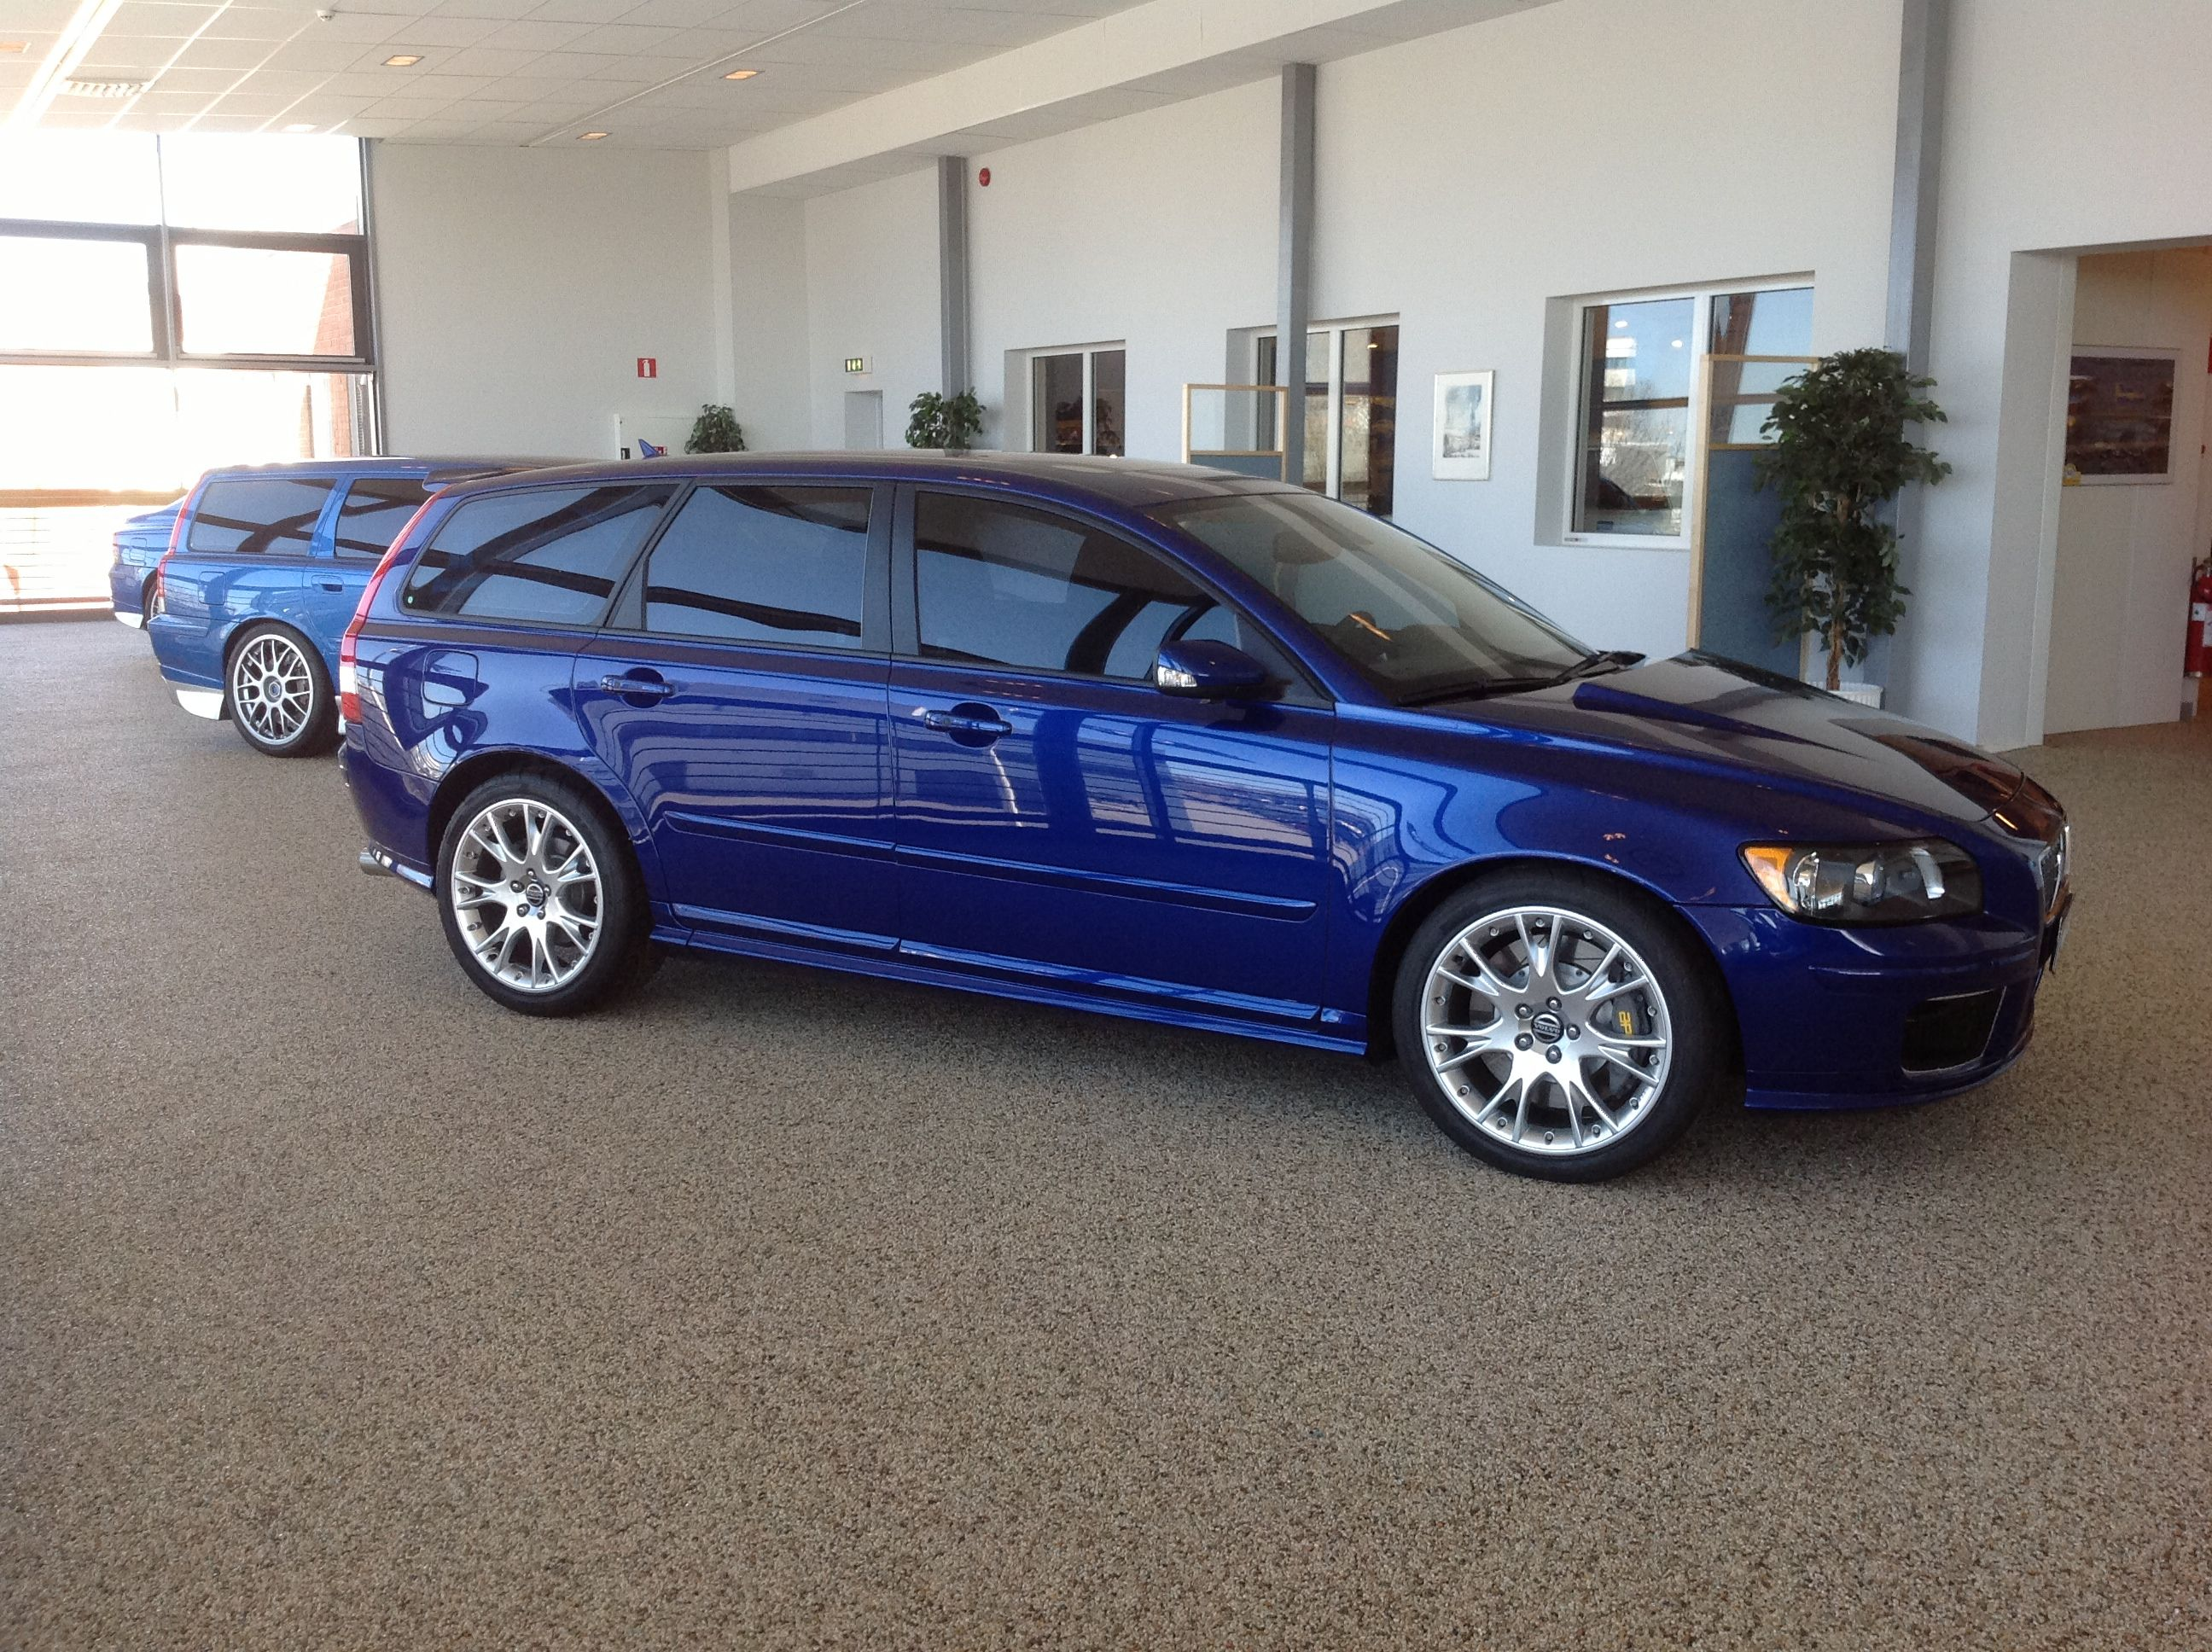 1ef8827b3a56a7dea6374615e670c9b1 Interesting Info About Volvo S40 2008 with Inspiring Pictures Cars Review